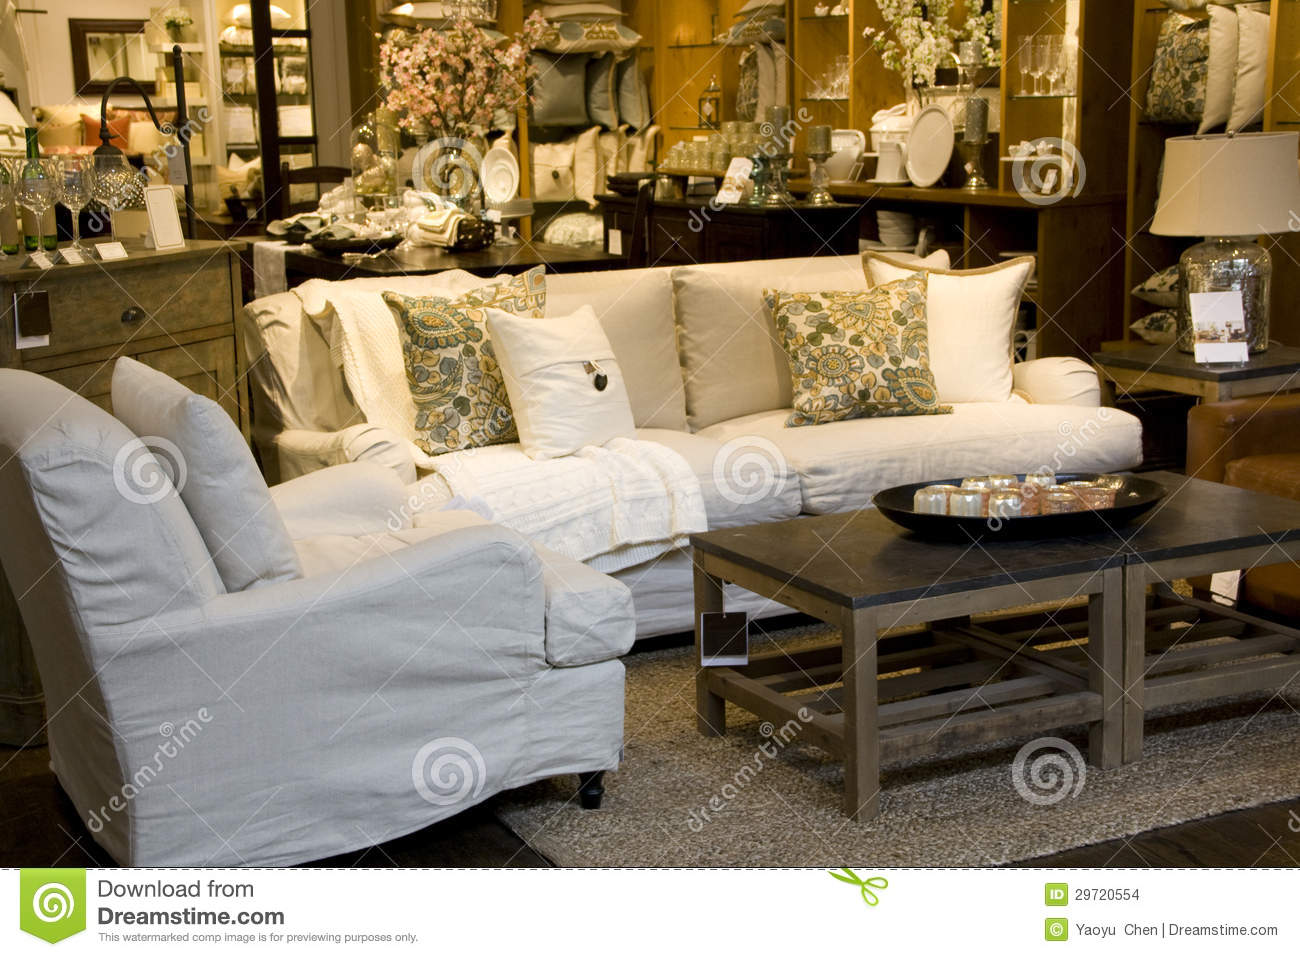 Furniture and home decor store stock images image 29720554 for Best place to sell furniture online